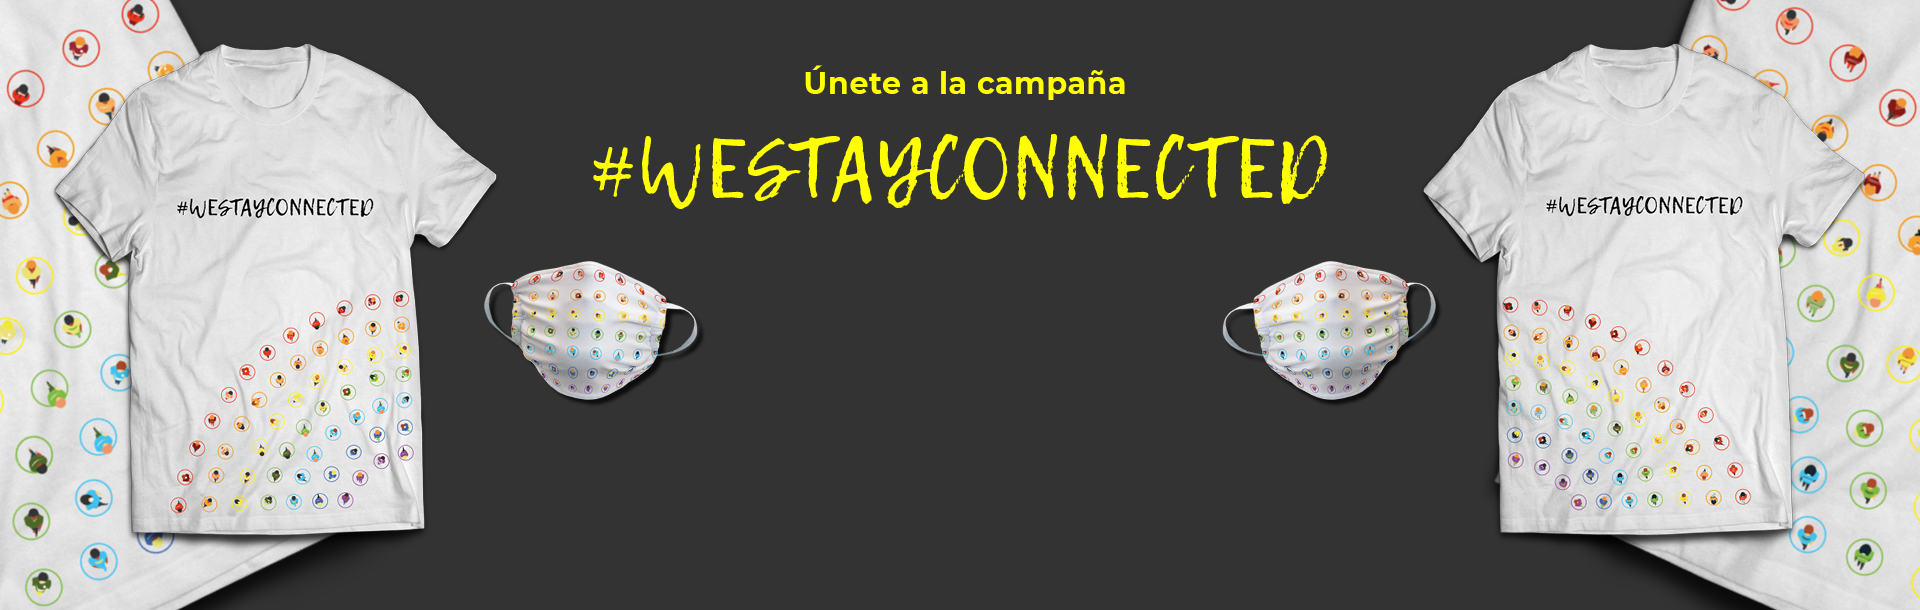 westayconnected